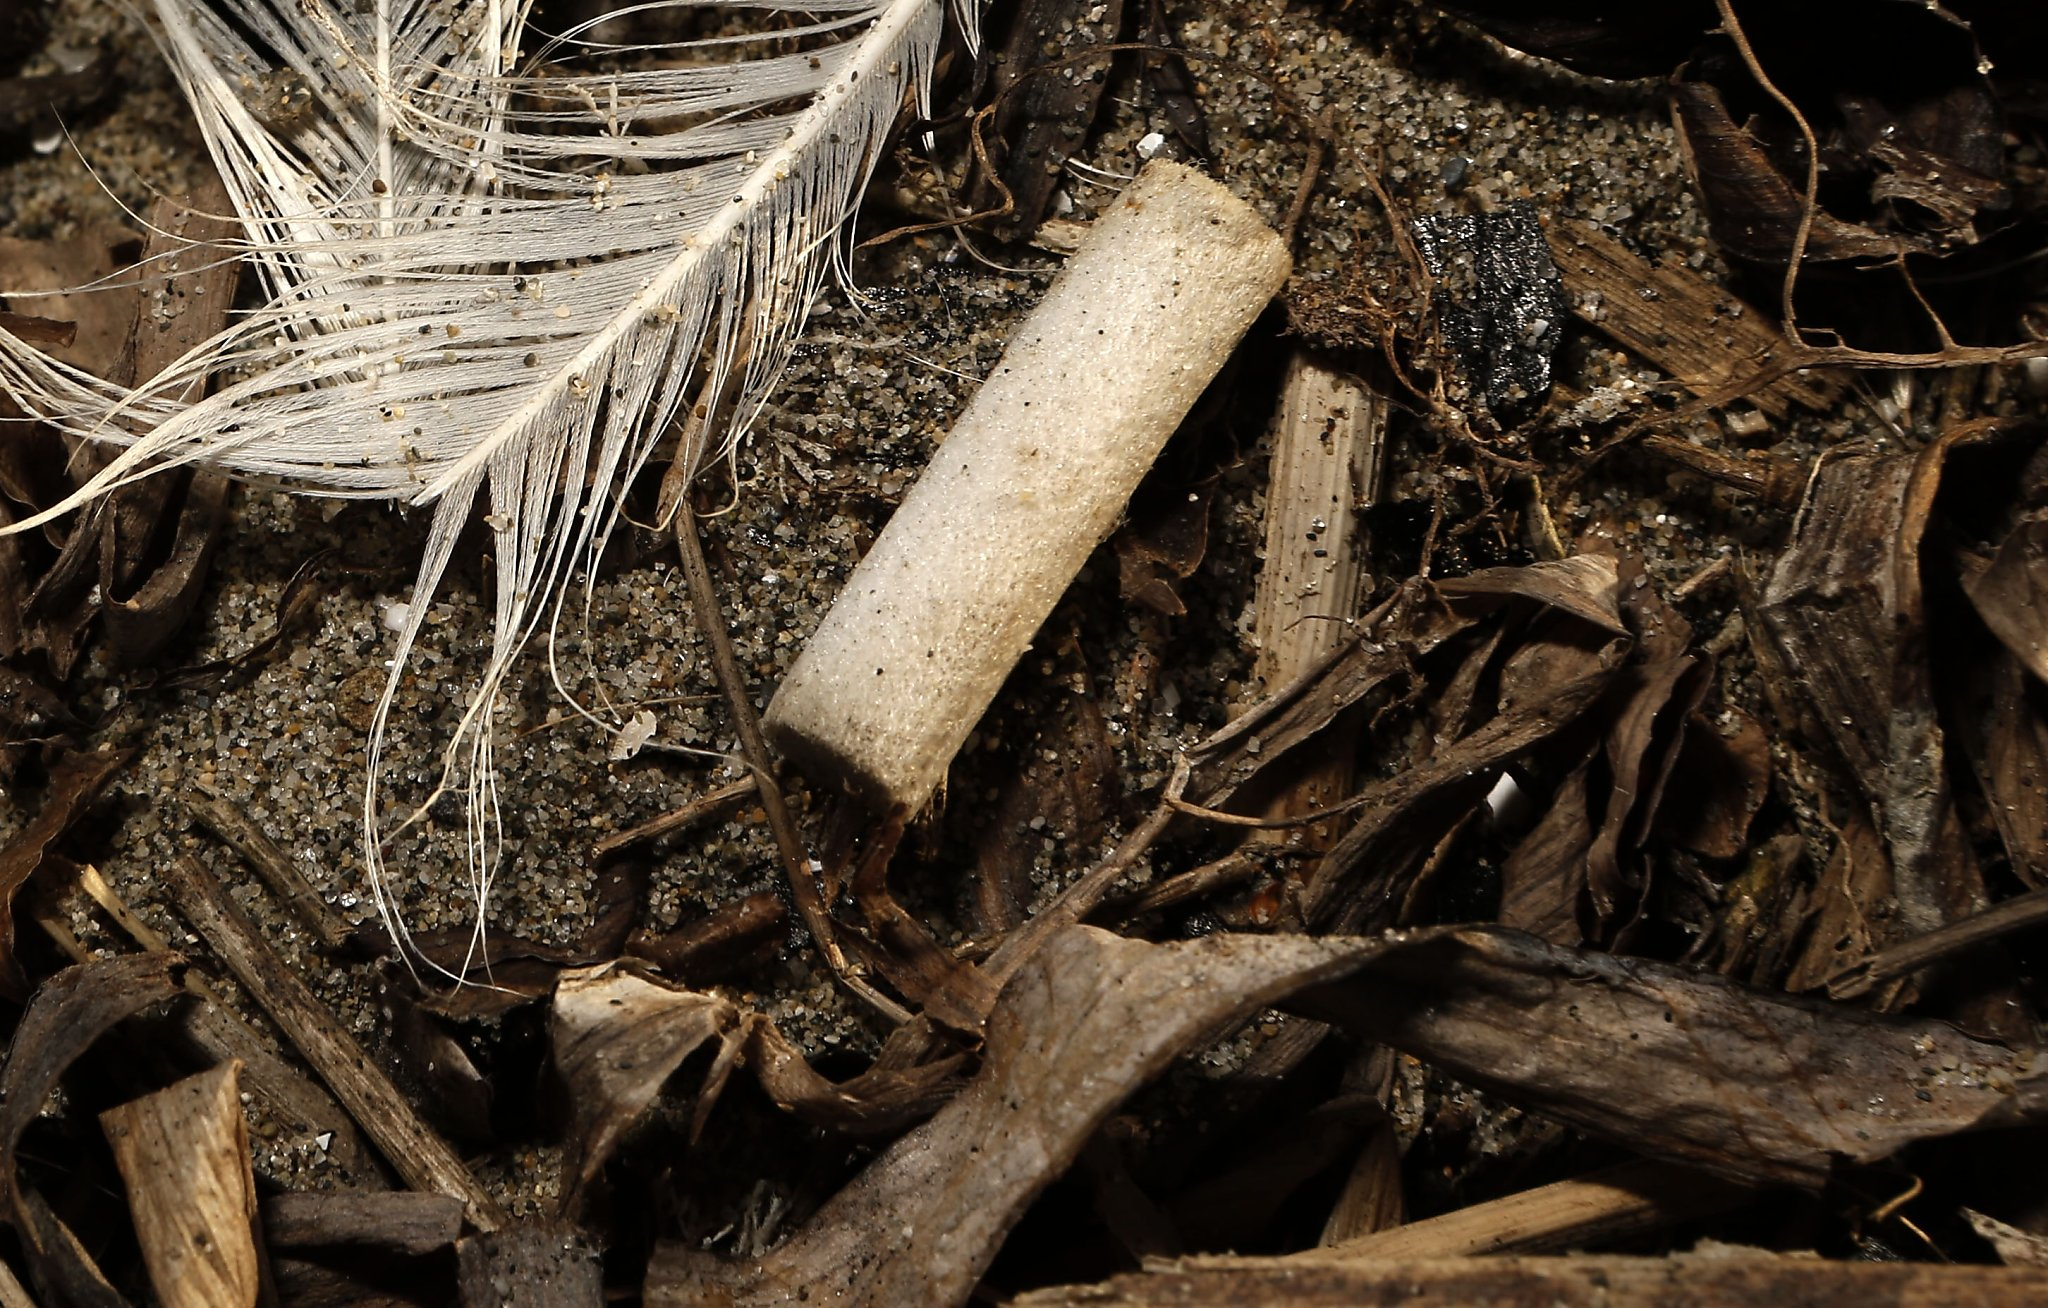 Kicking cigarette butts out of California is aim of bill - SFGate